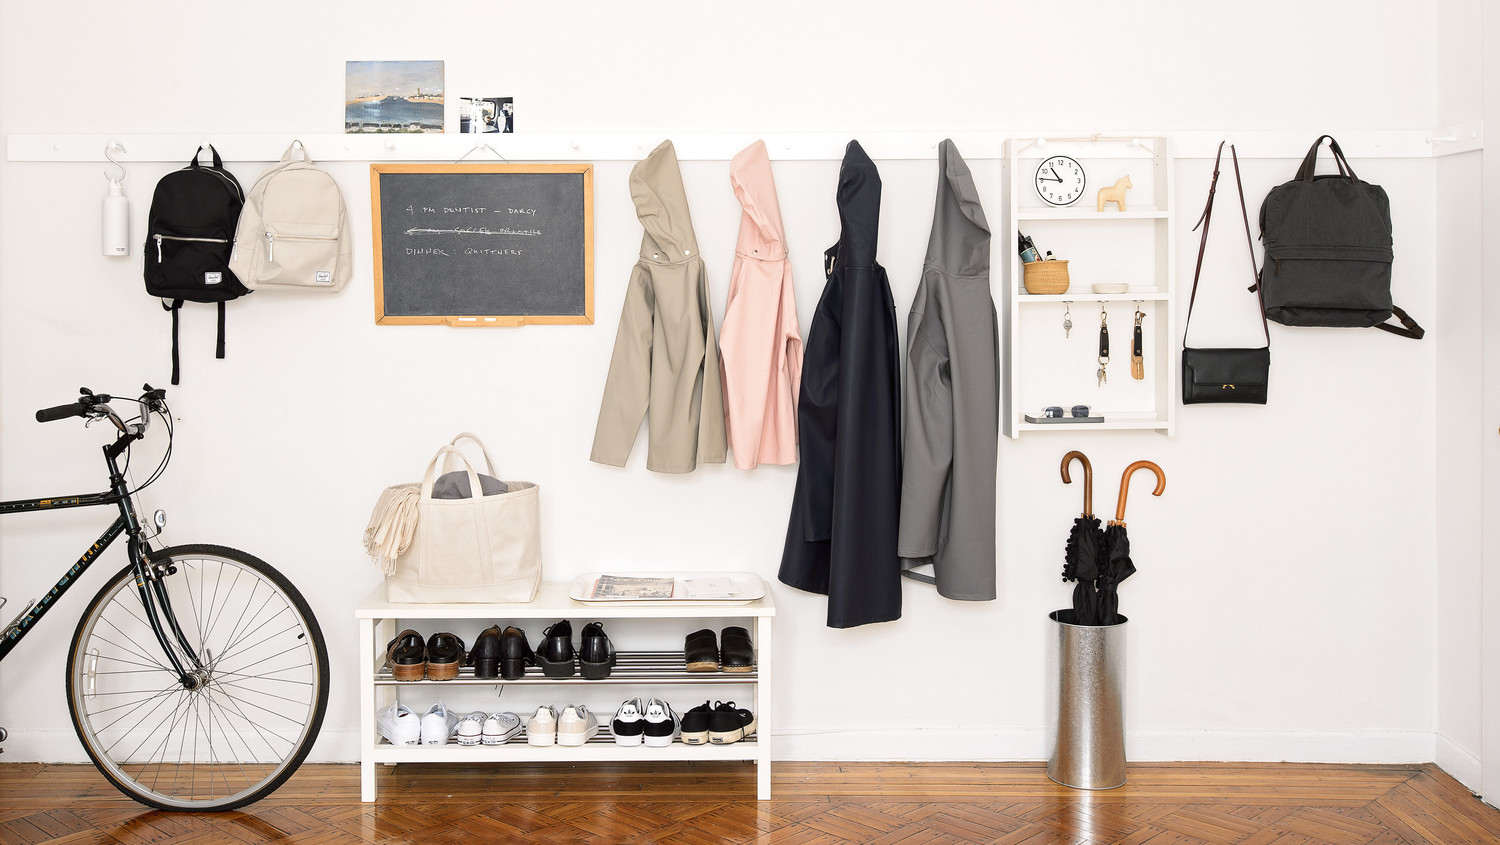 18 Ideas for Creating a More Organized Entryway